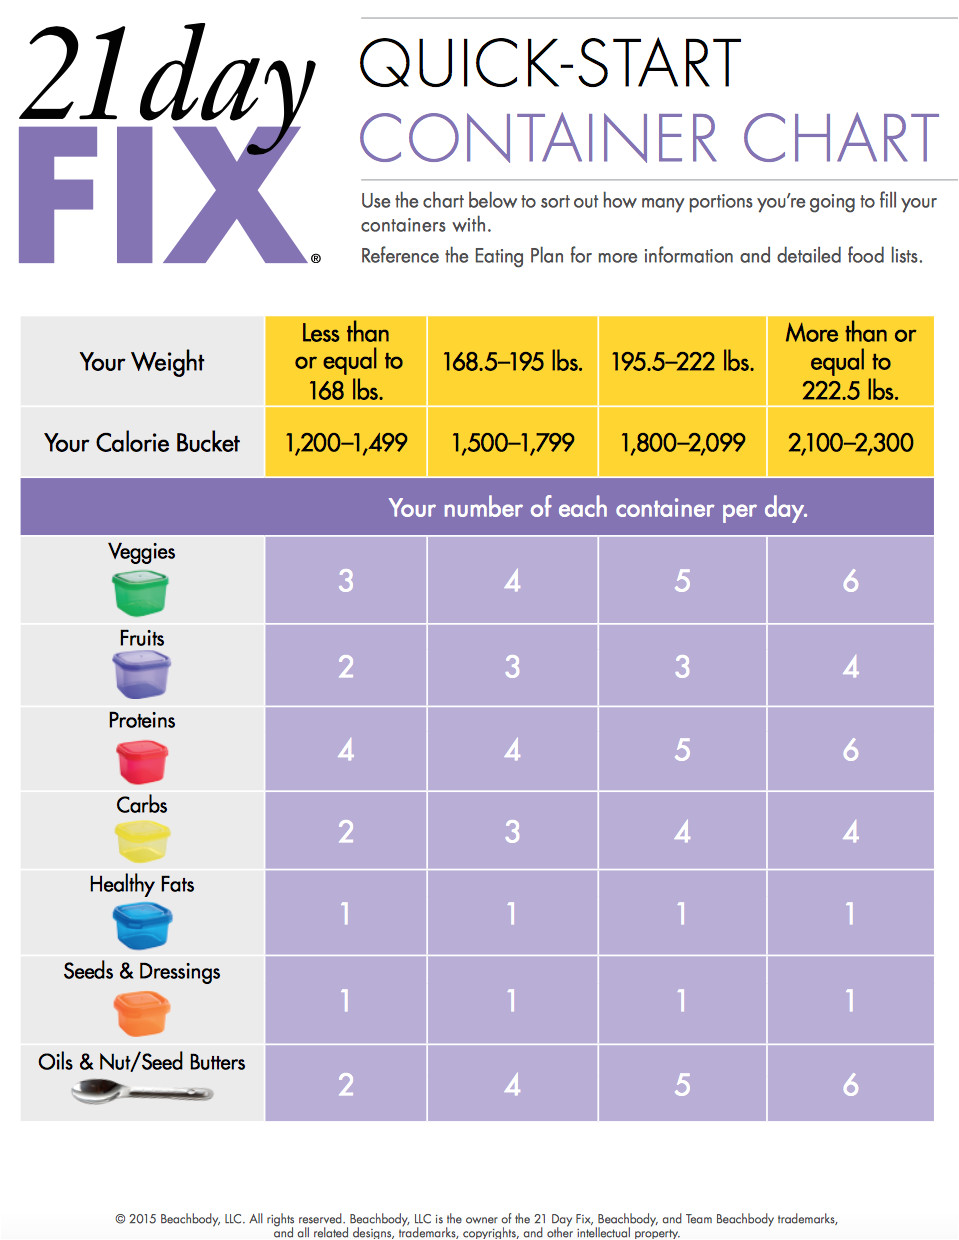 Portion Control Template 21 Day Fix Meal Plan and Workouts Team Eternalfit